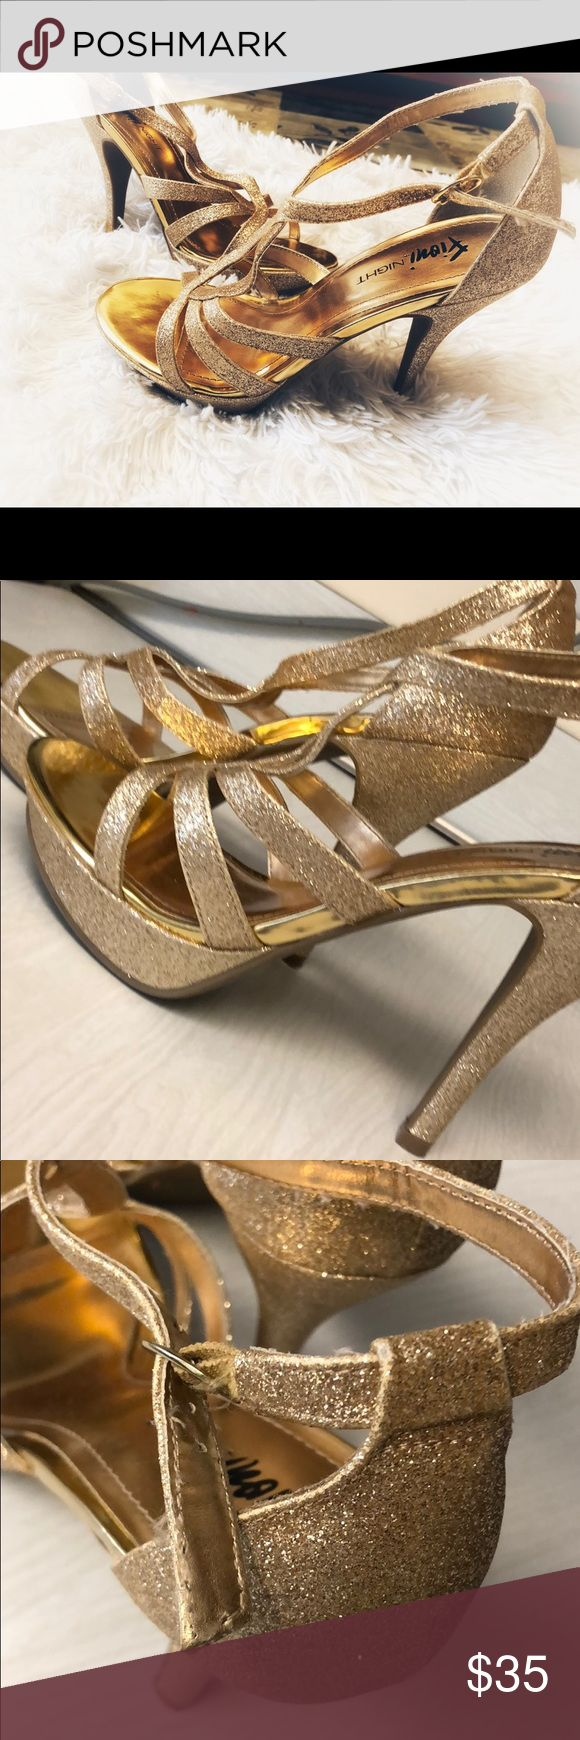 "Gold sparkly/glitter shoes Gently Used- Heel Height 5"" Shoes Heels"